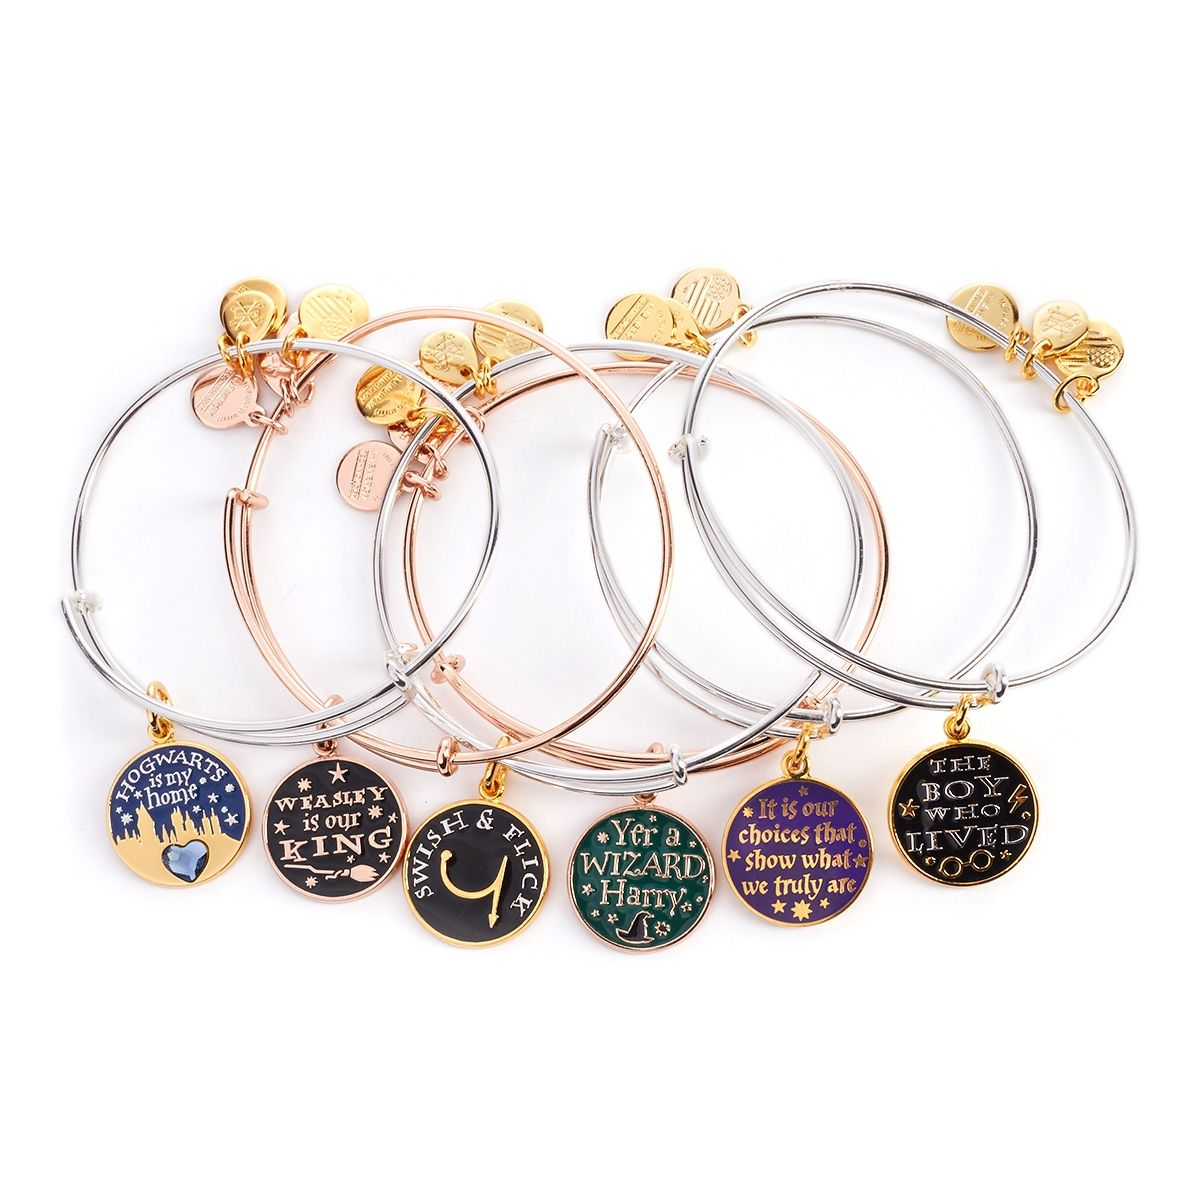 329a4ef73 Any HP stuff from Alex and Ani. For a limited time only, collect this  exclusive HARRY POTTER™ Set of 6 Charm Bangles. Set includes:• Yer a Wizard  Harry ...